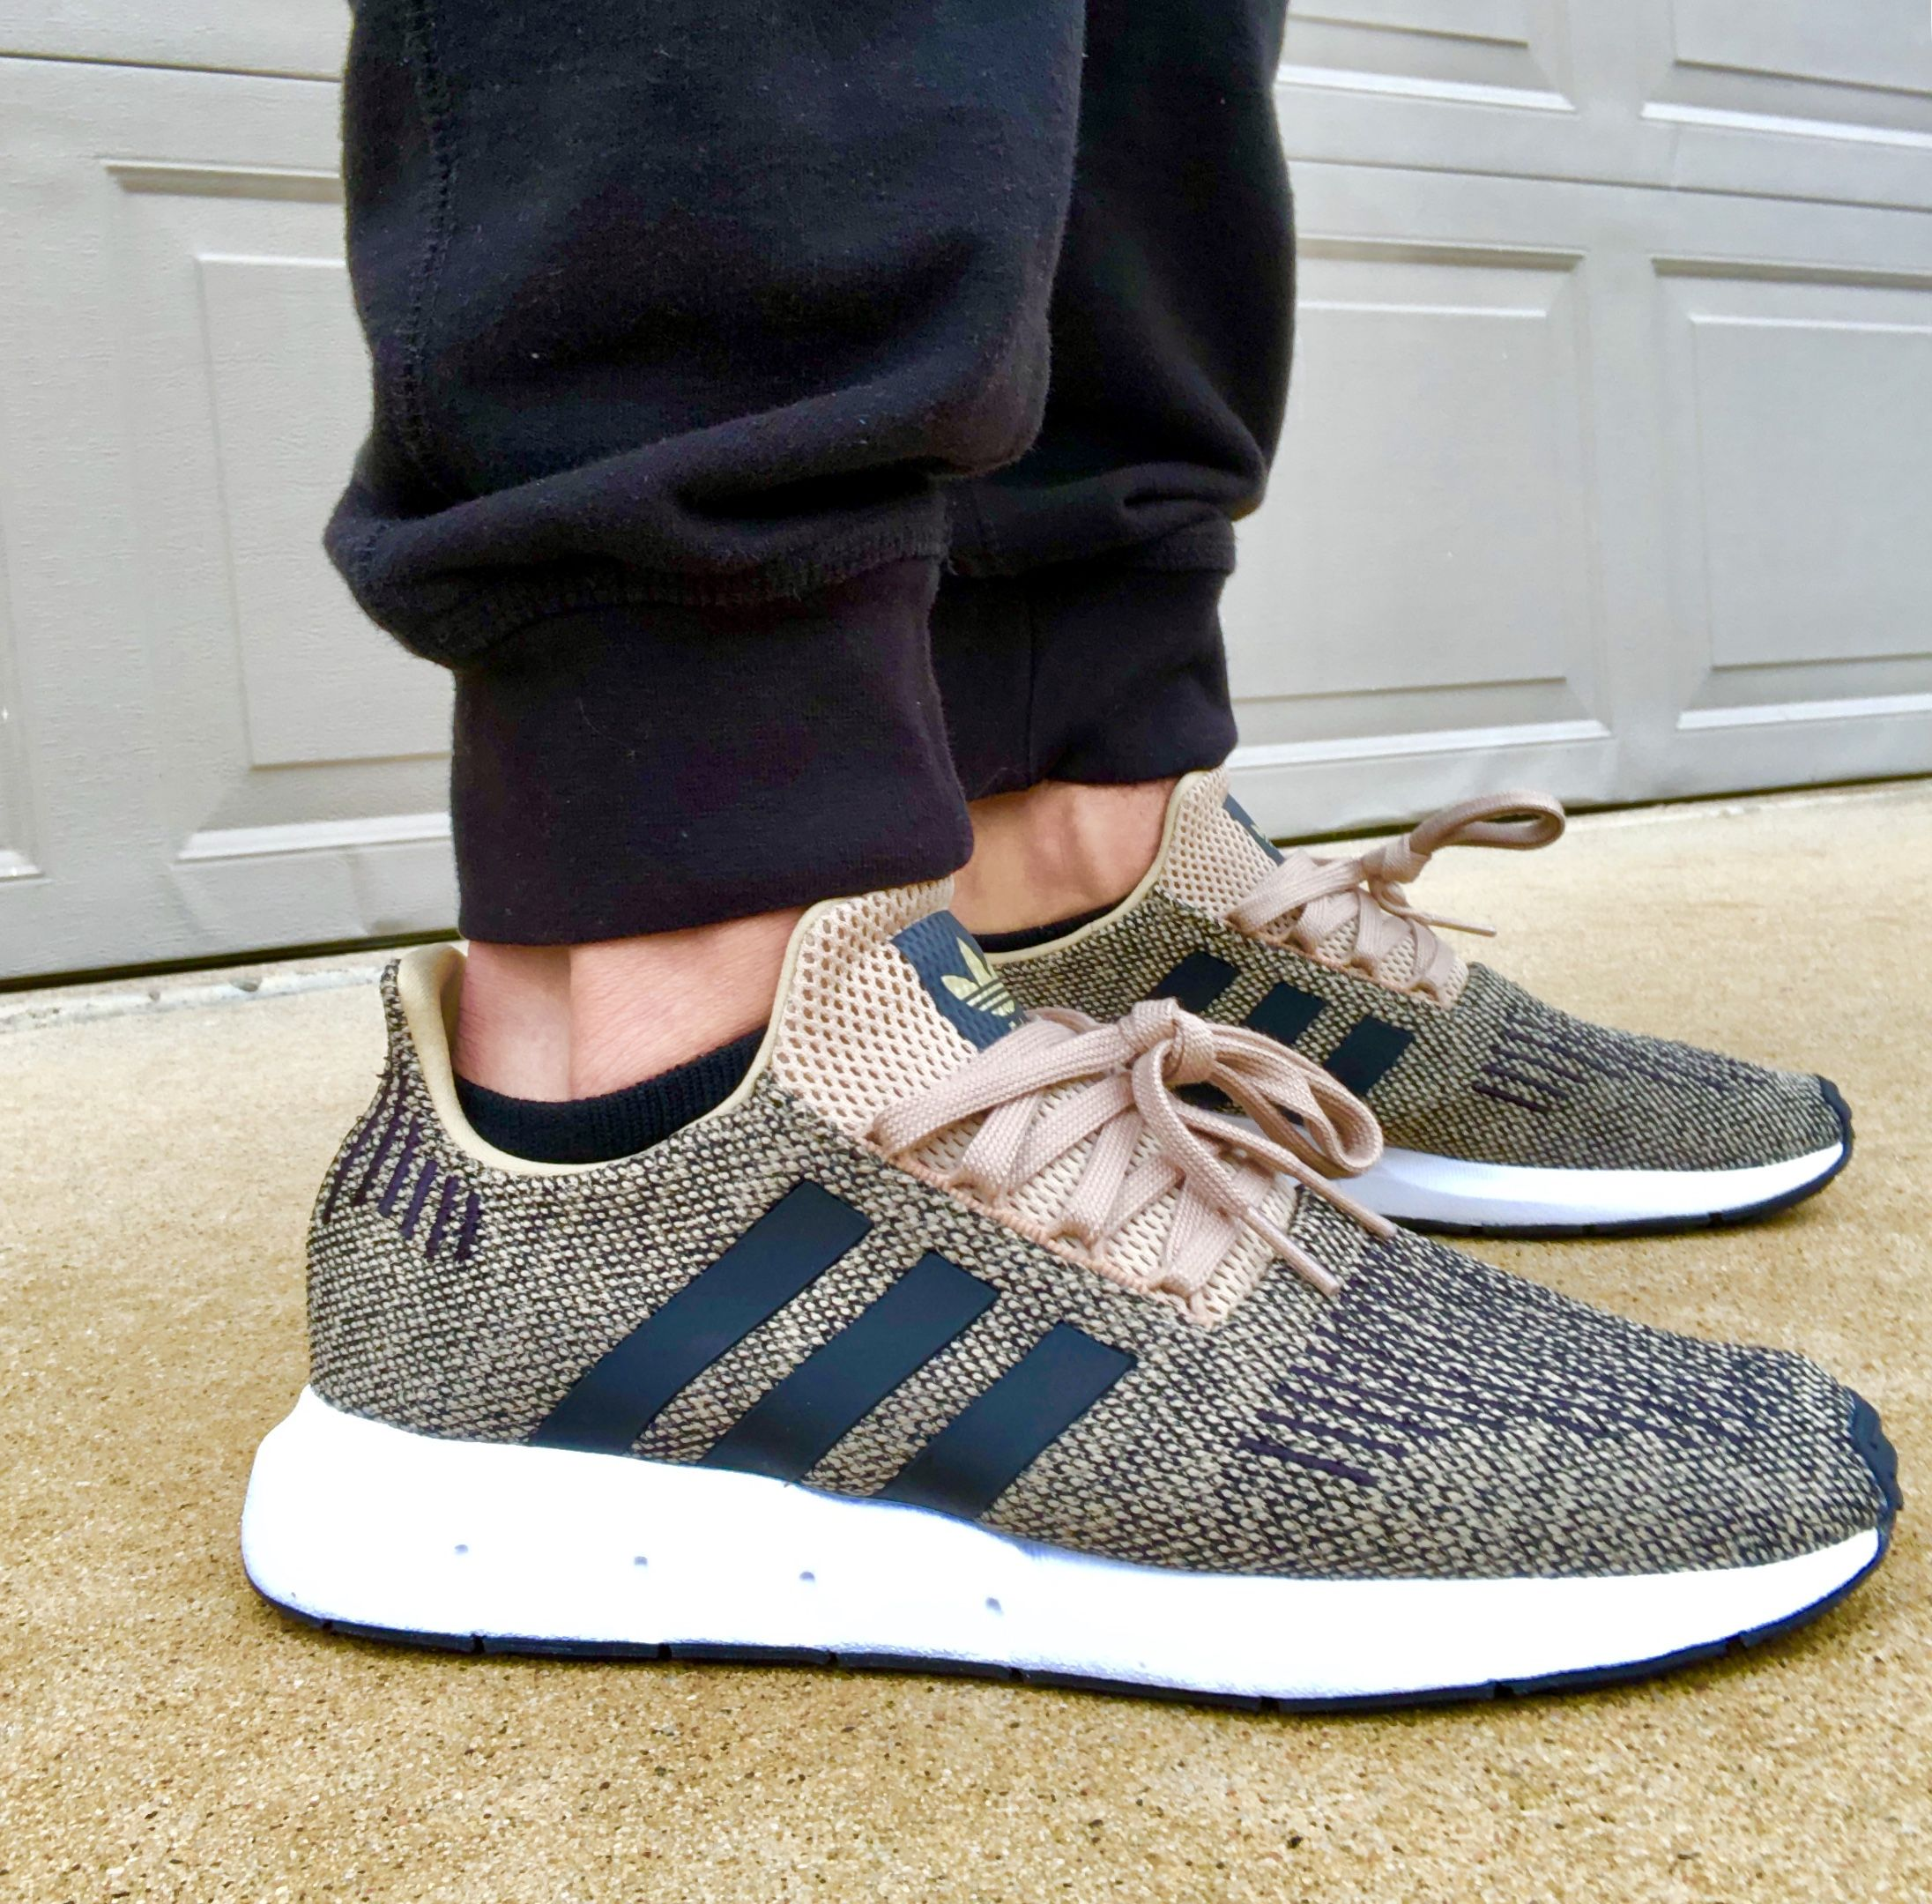 hot new products buy sale really cheap Adidas Swift Run Raw Gold! in 2019 | Adidas, Fashion shoes ...